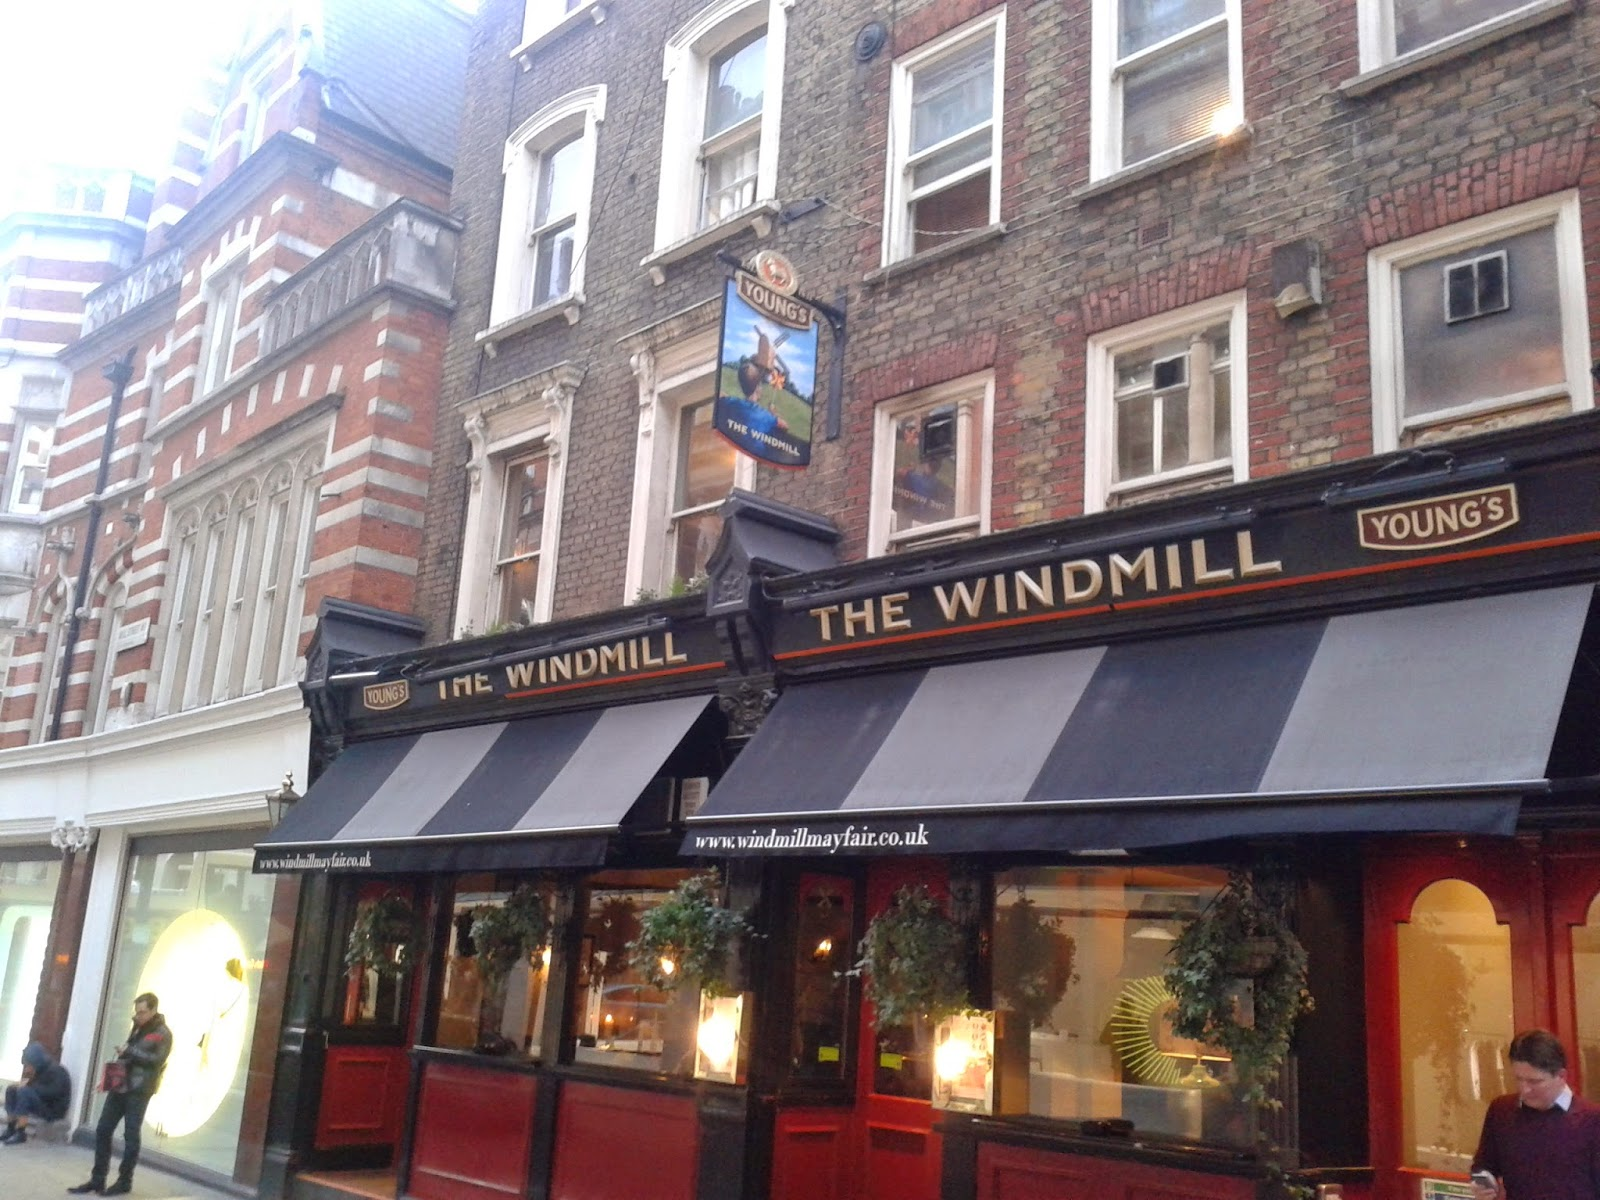 The Windmill Mayfair